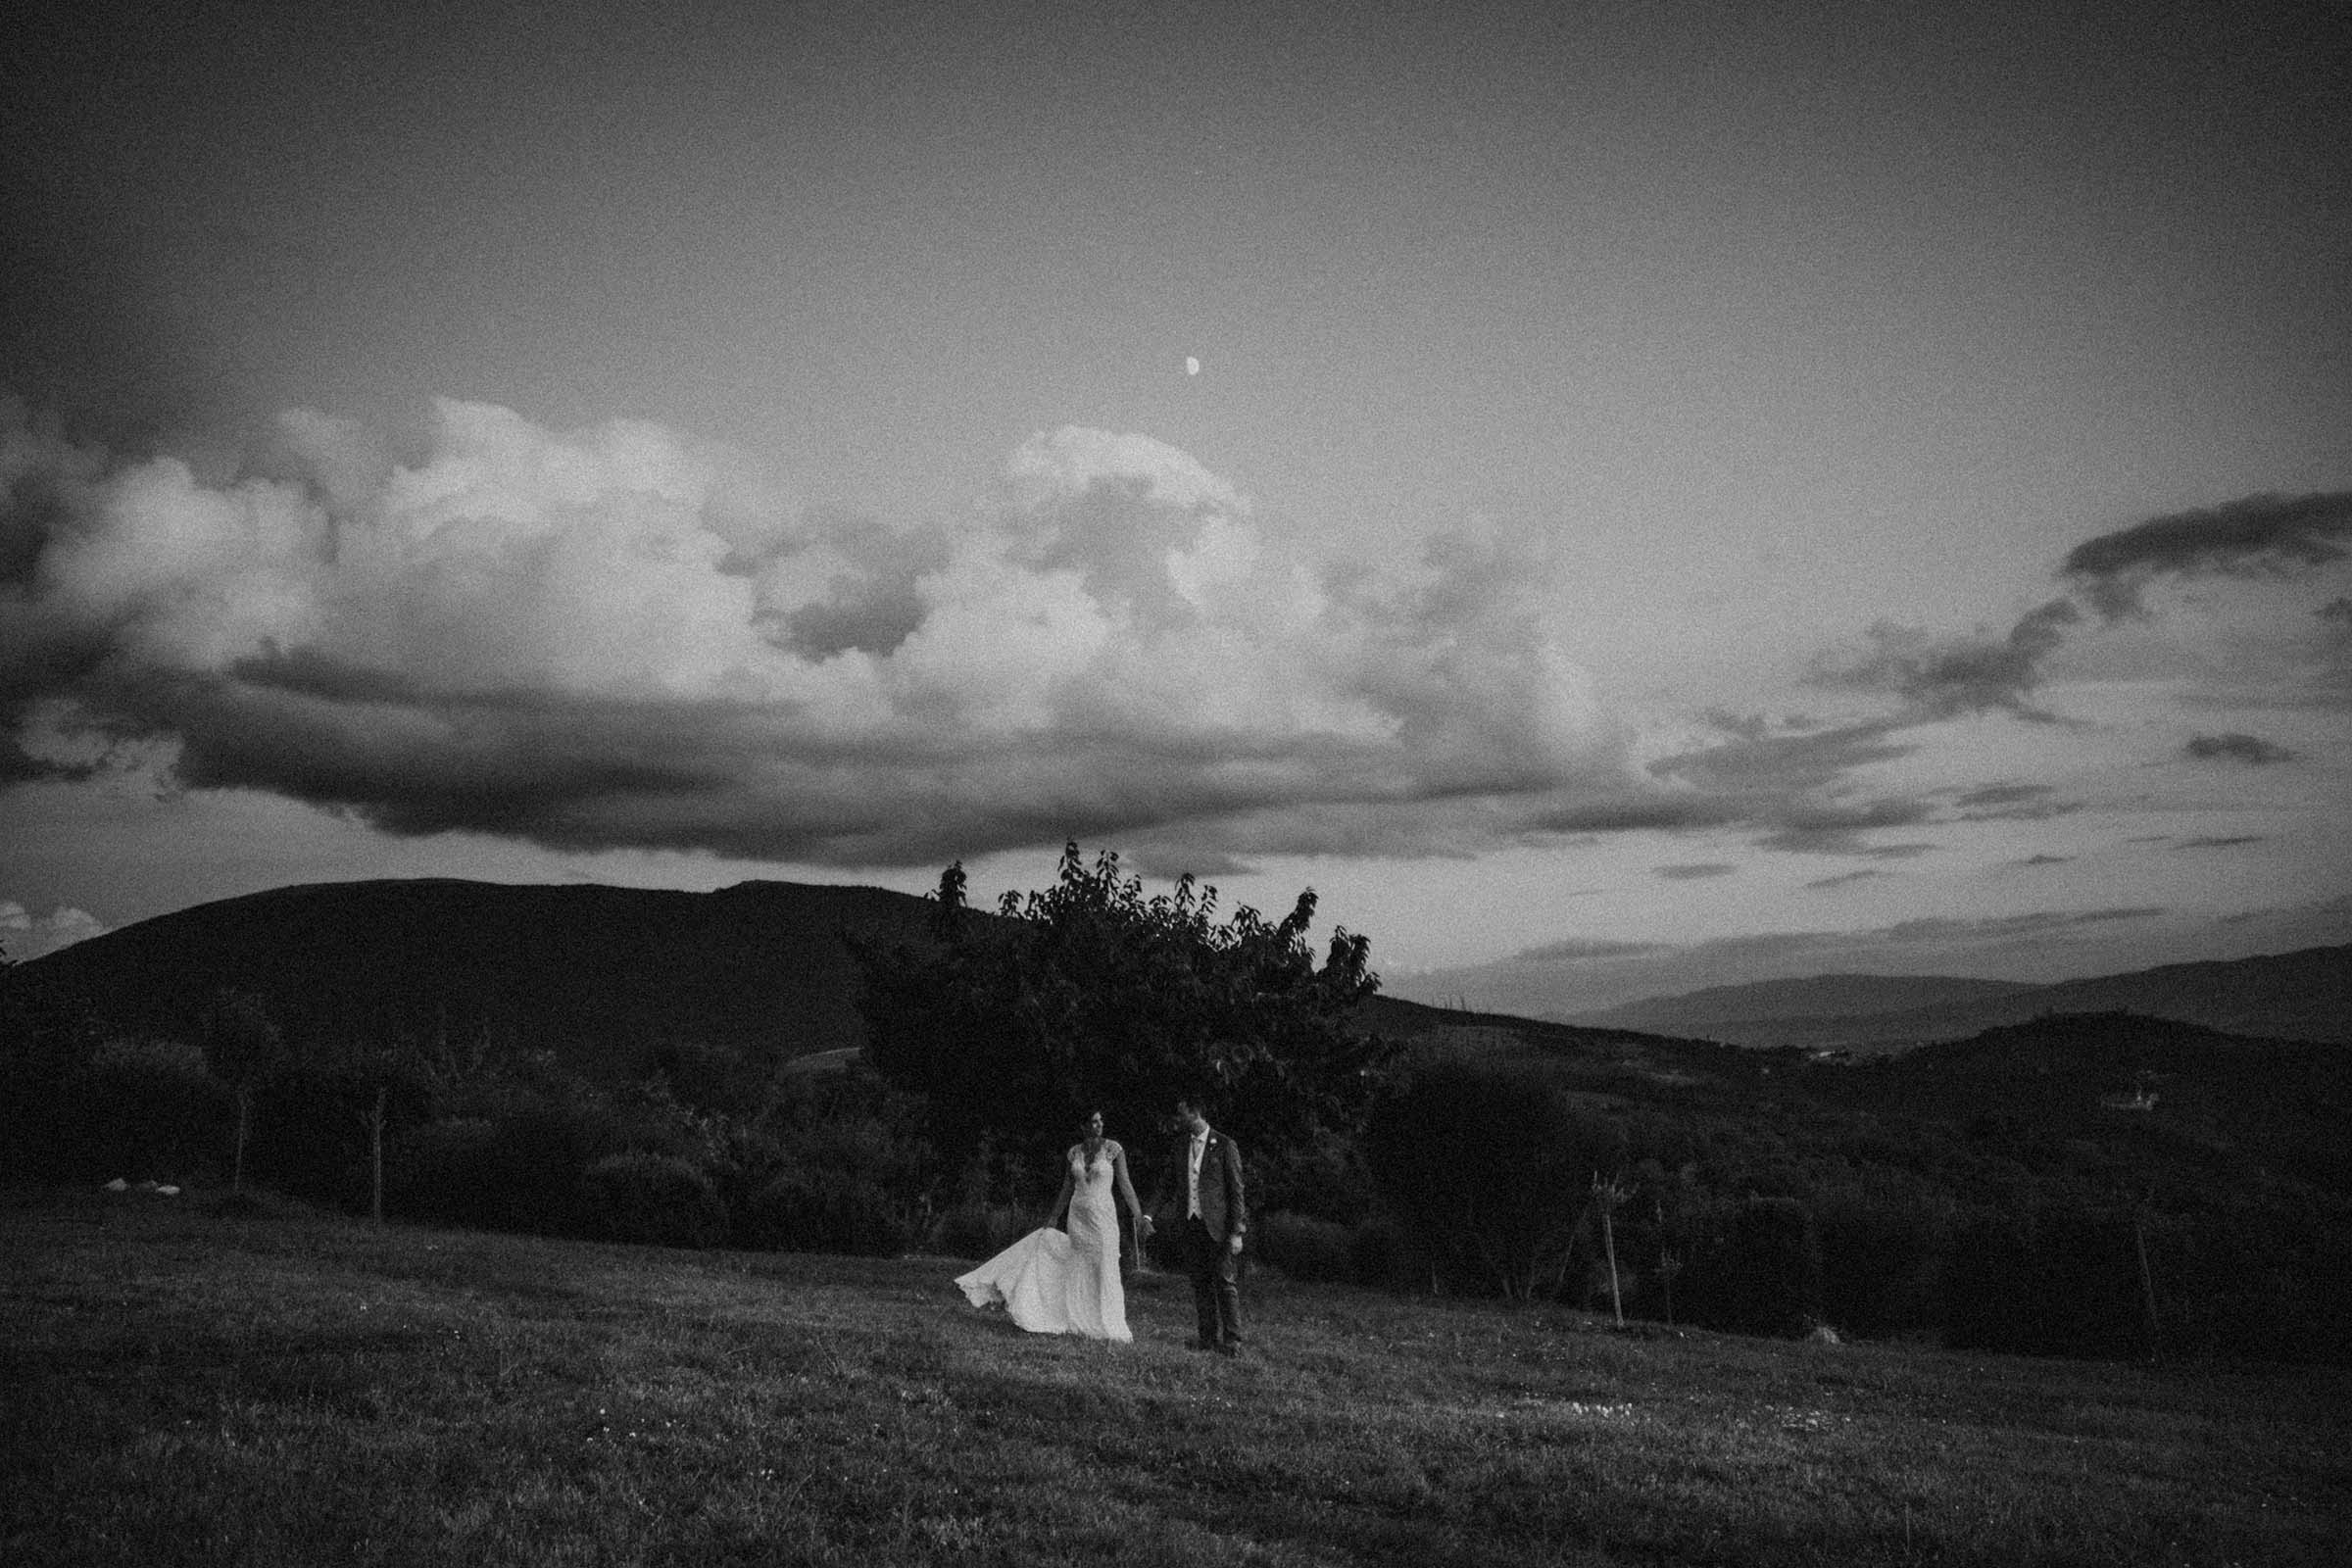 black and white photo if a couple and the moon above